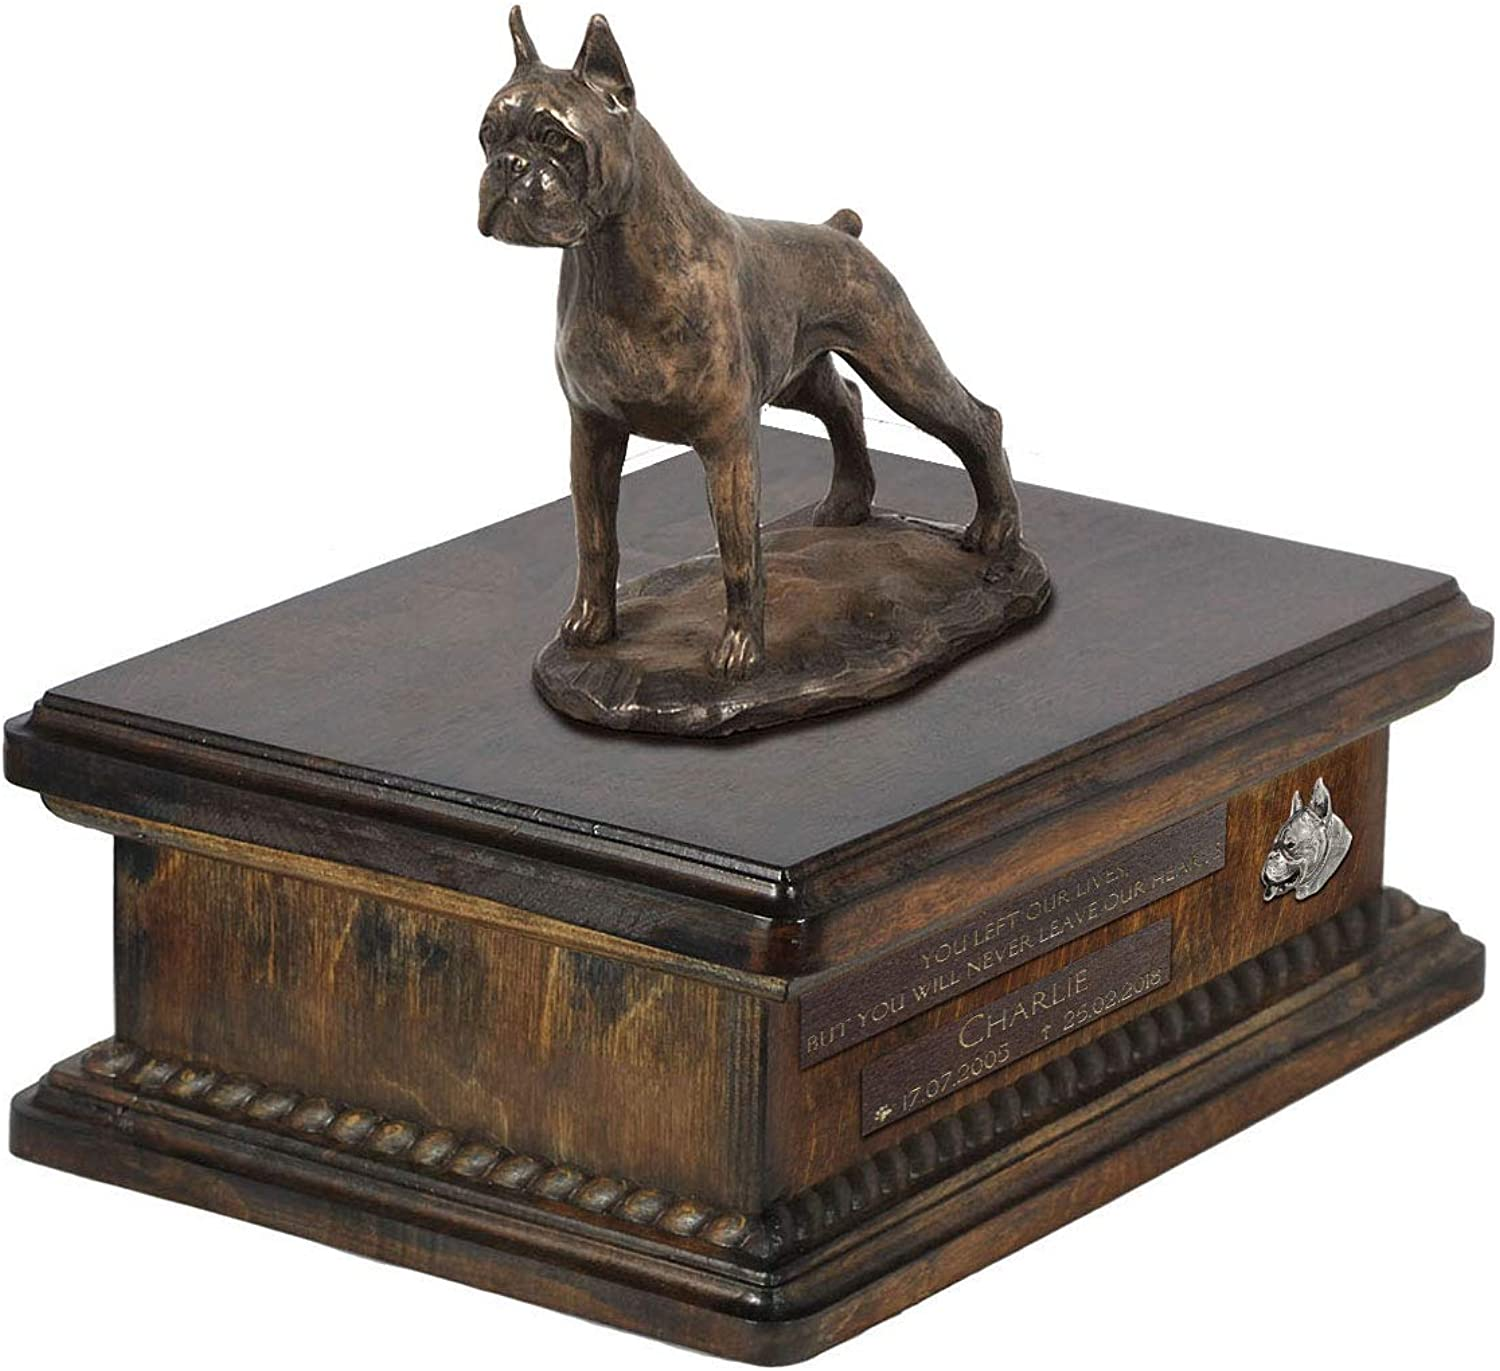 Boxer cropped, Urn for Dog Ashes Memorial with Statue, Pet's Name and Quote  ArtDog Personalized